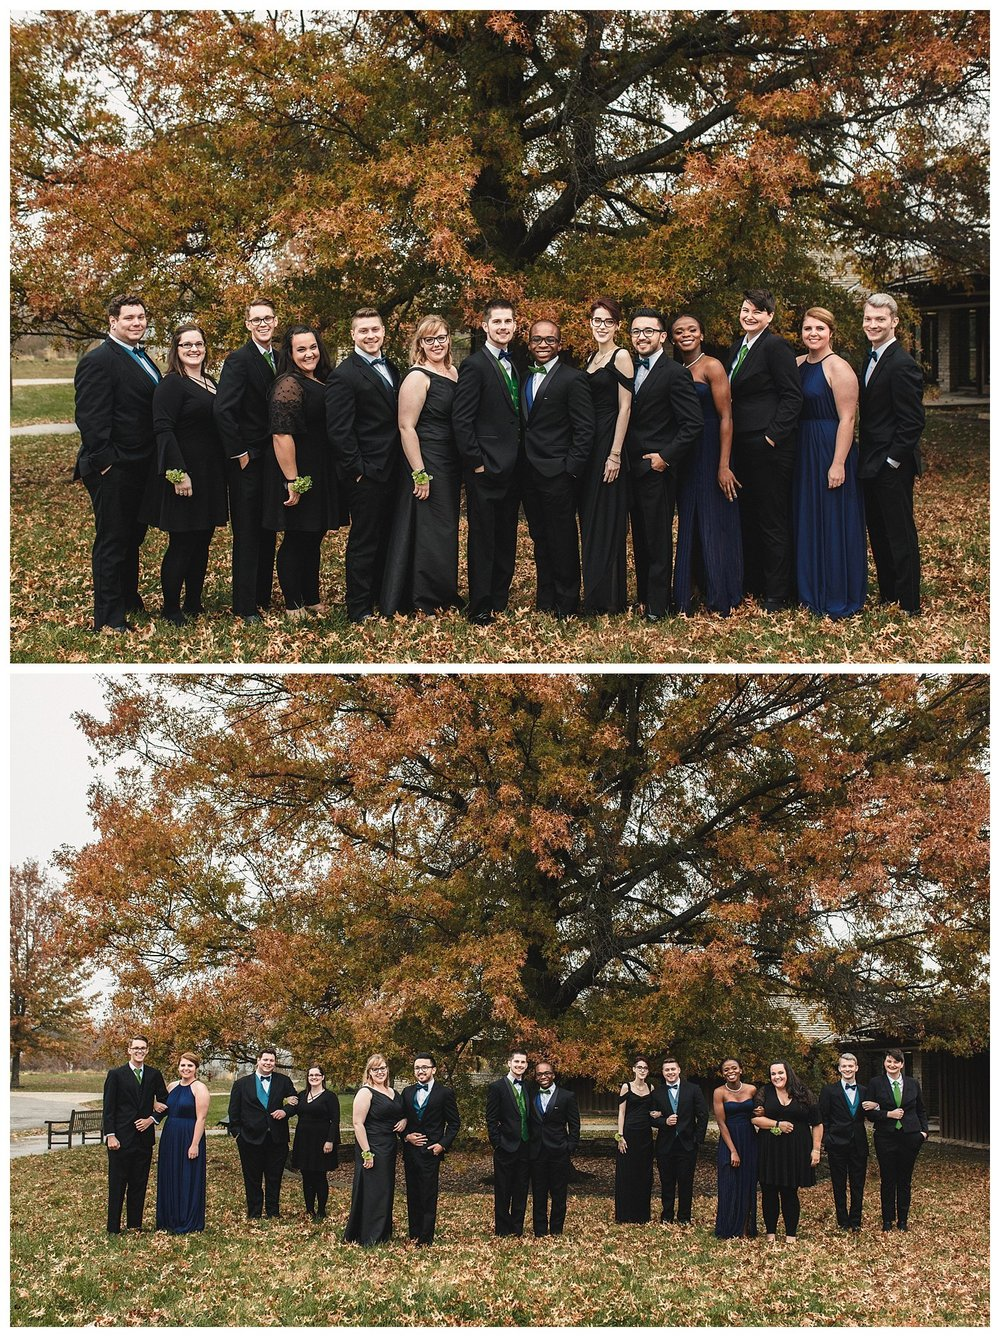 Kelsey_Diane_Photography_Loose_Mansion_Wedding_Photography_Kansas_City_Victor_Lyndsay_0241.jpg